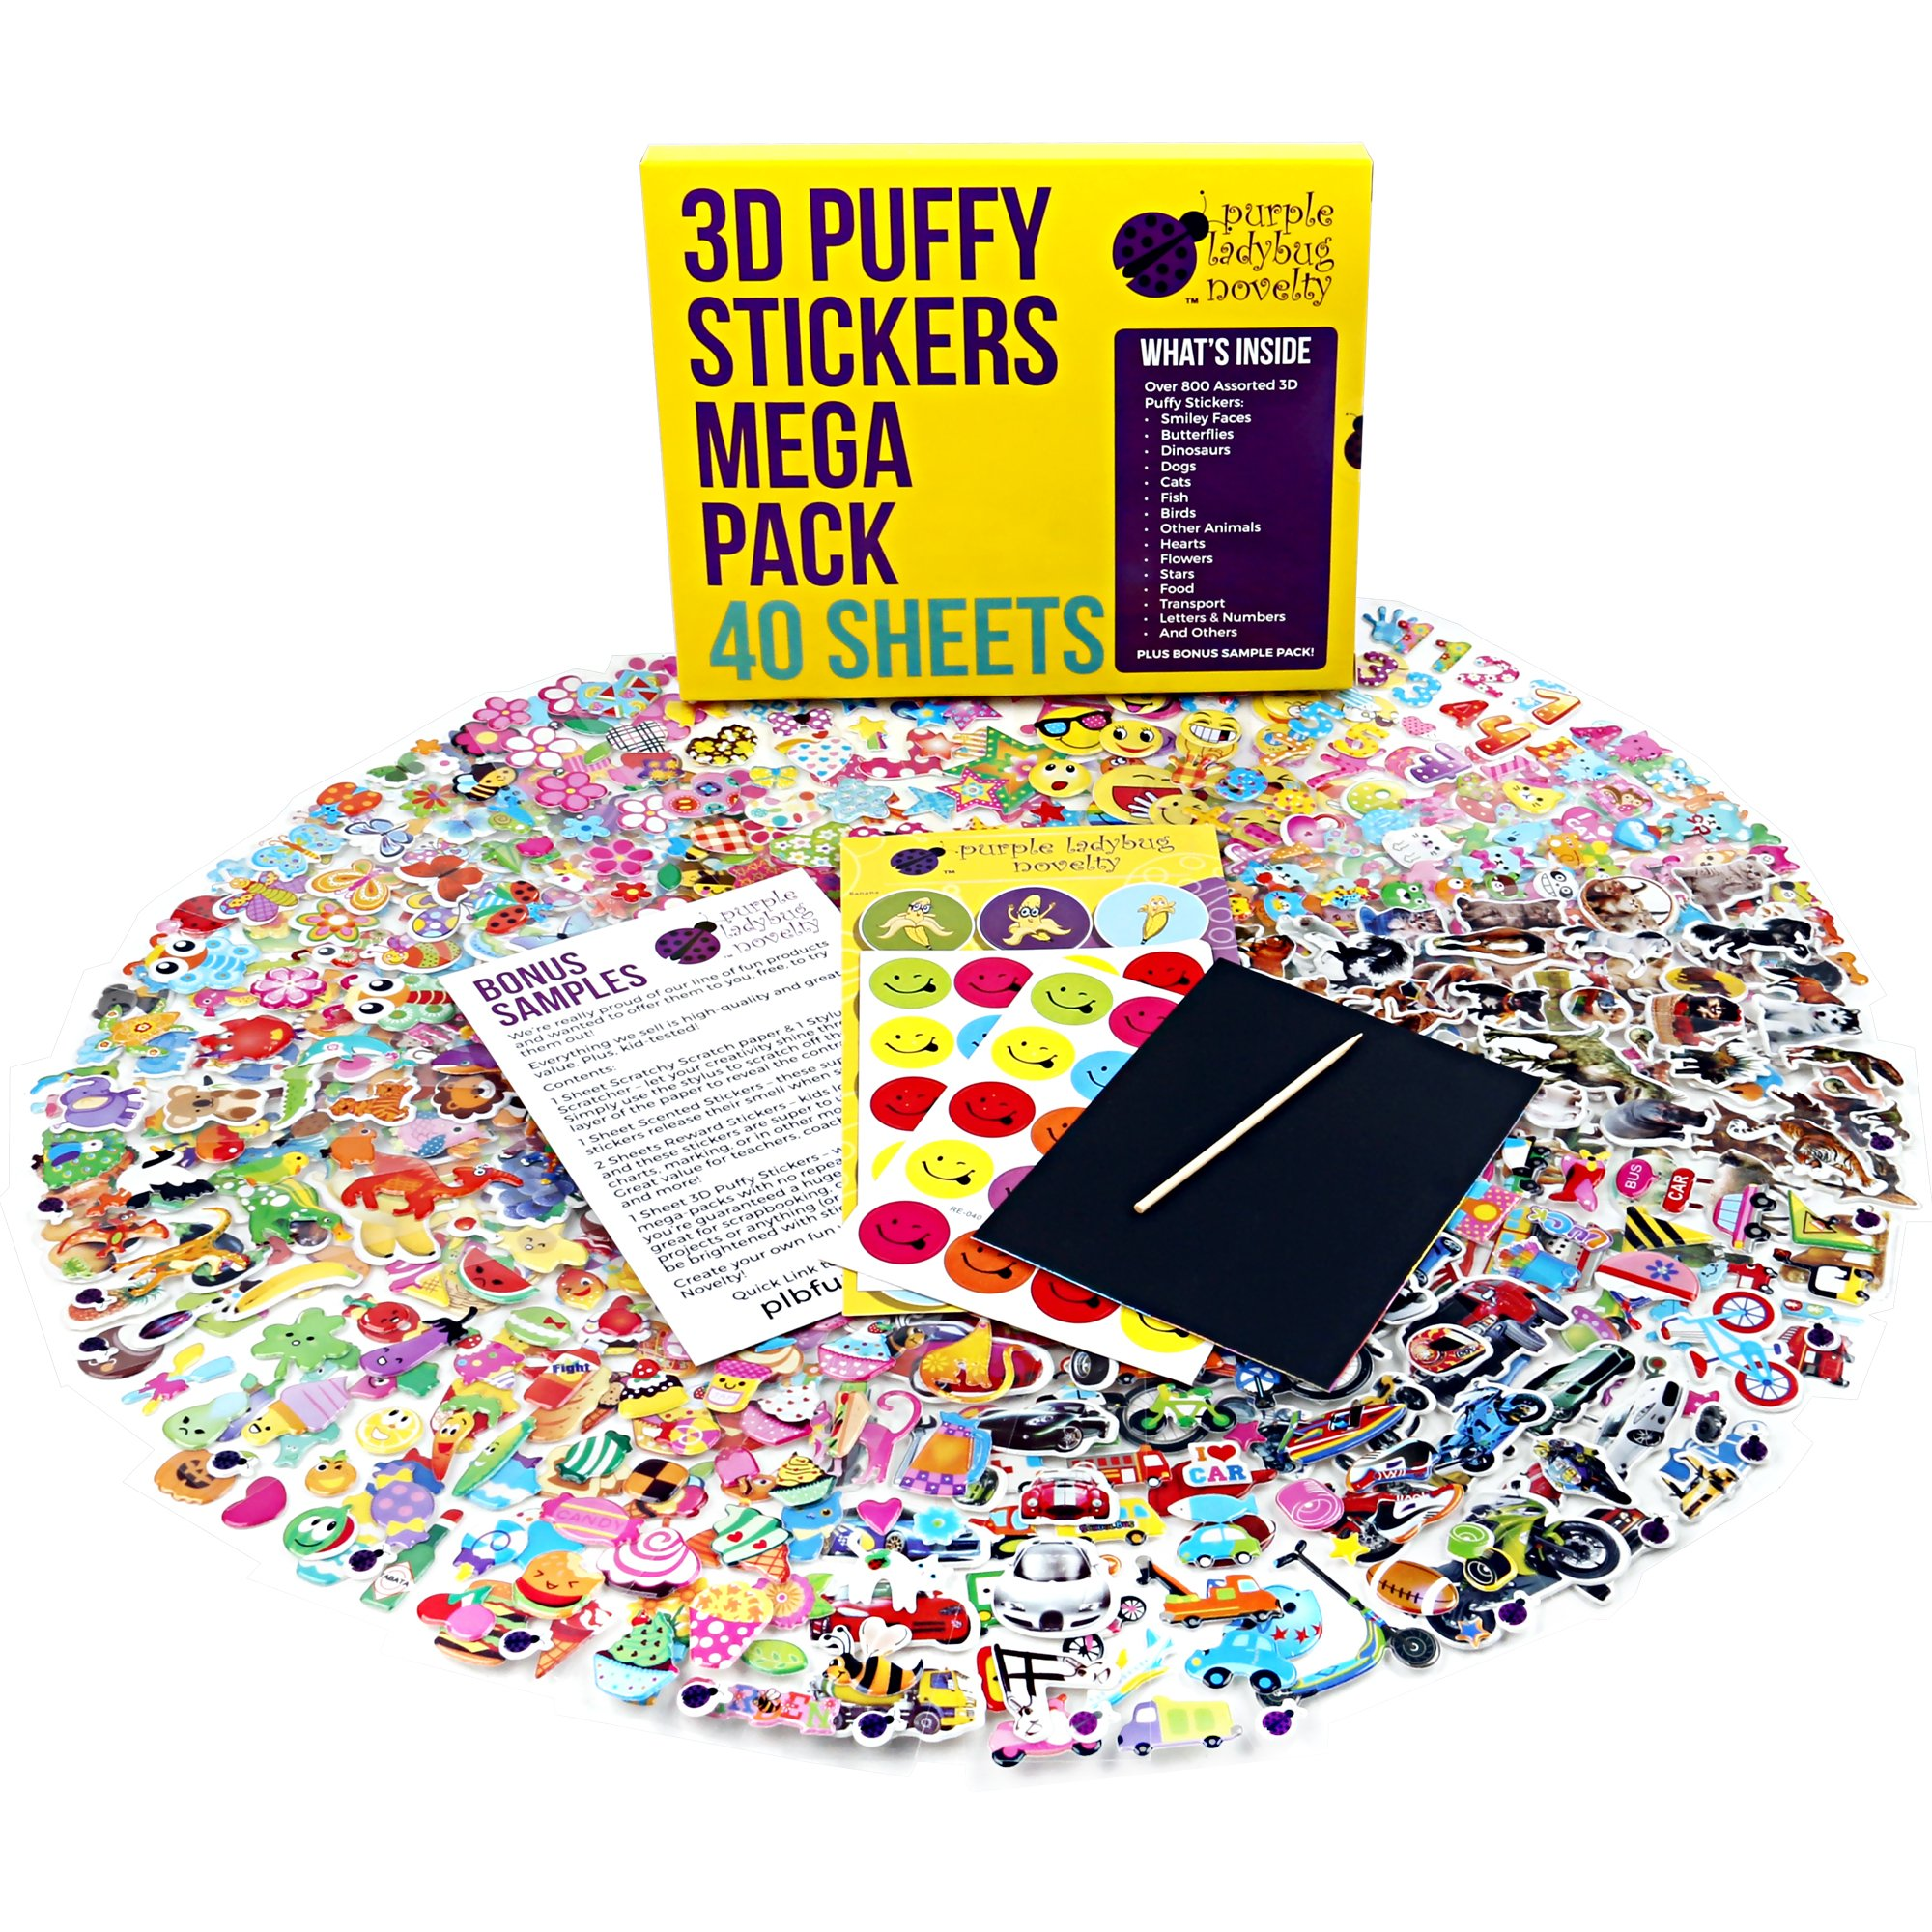 Purple Ladybug Novelty 40 No Repeat Sheets Puffy Sticker Mega Variety Pack 950+ 3D Puffy Stickers For Kids, Toddlers & Teachers - Including Animals, Smiley Faces, Cars & More!